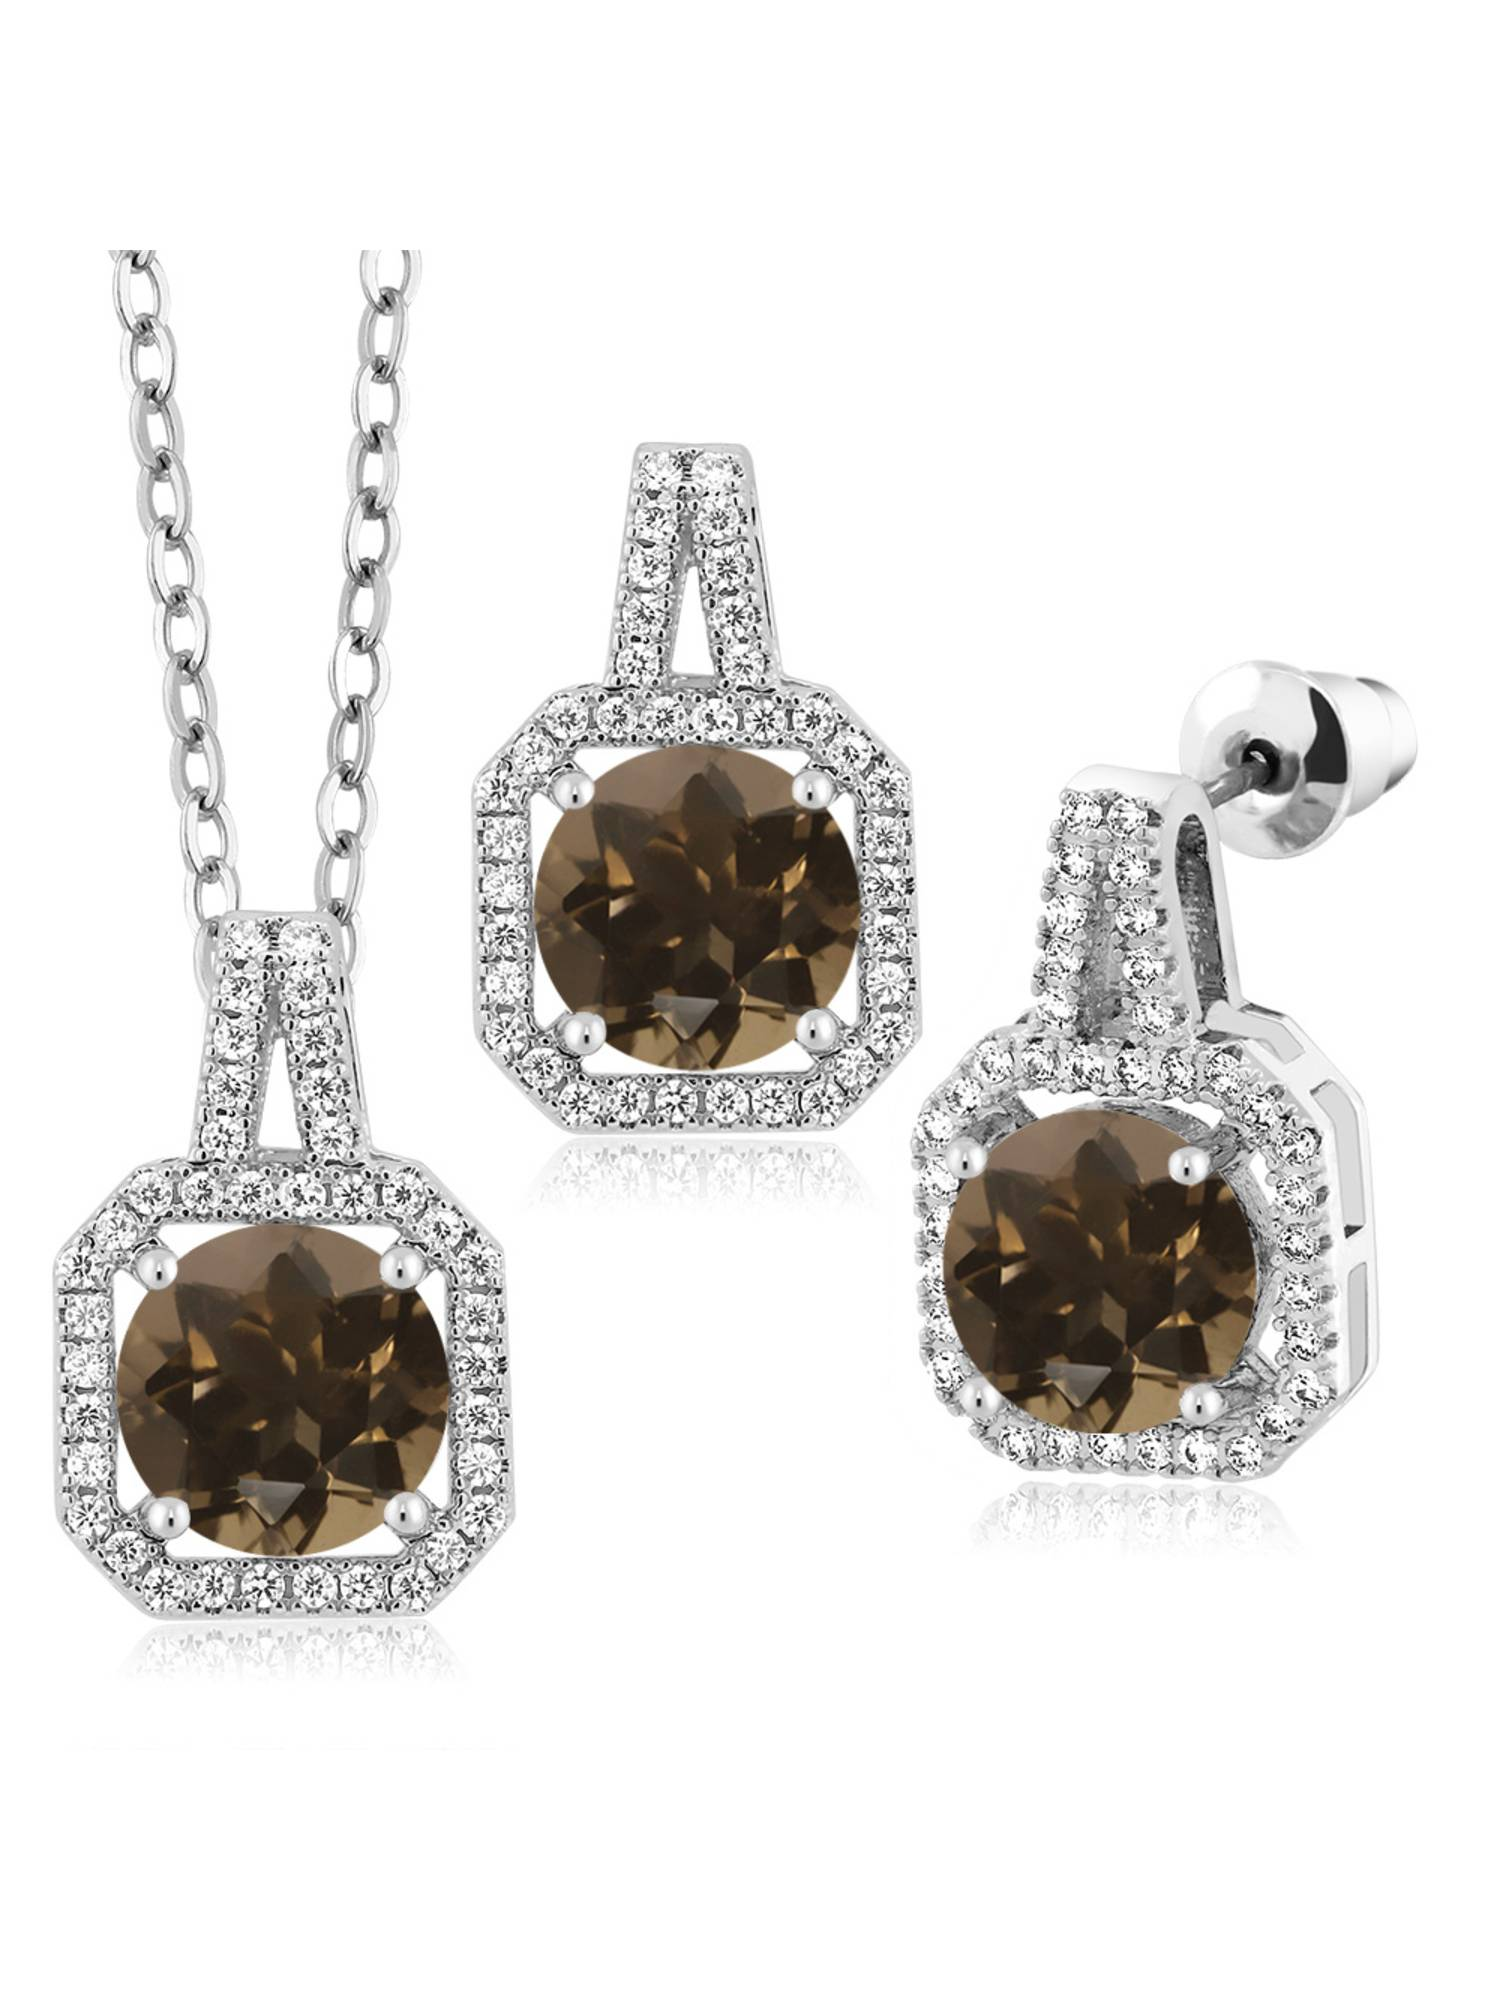 6.47 Ct Round Brown Smoky Quartz Rhodium Plated Pendant Earrings Set